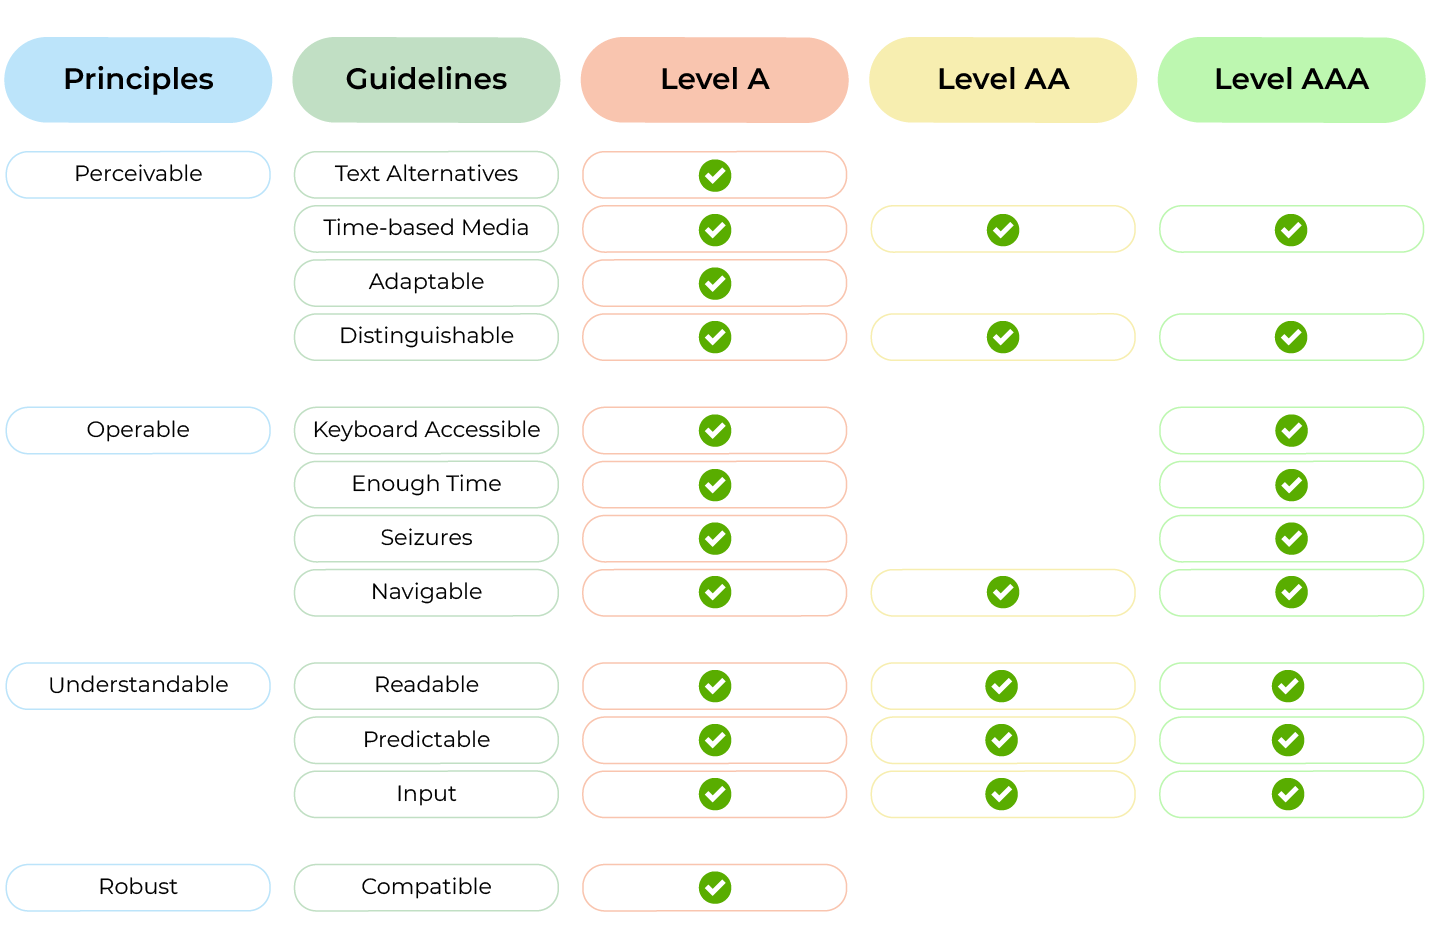 A chart summary of principles and guidelines for Level A, AA, and AA of ADA compliance